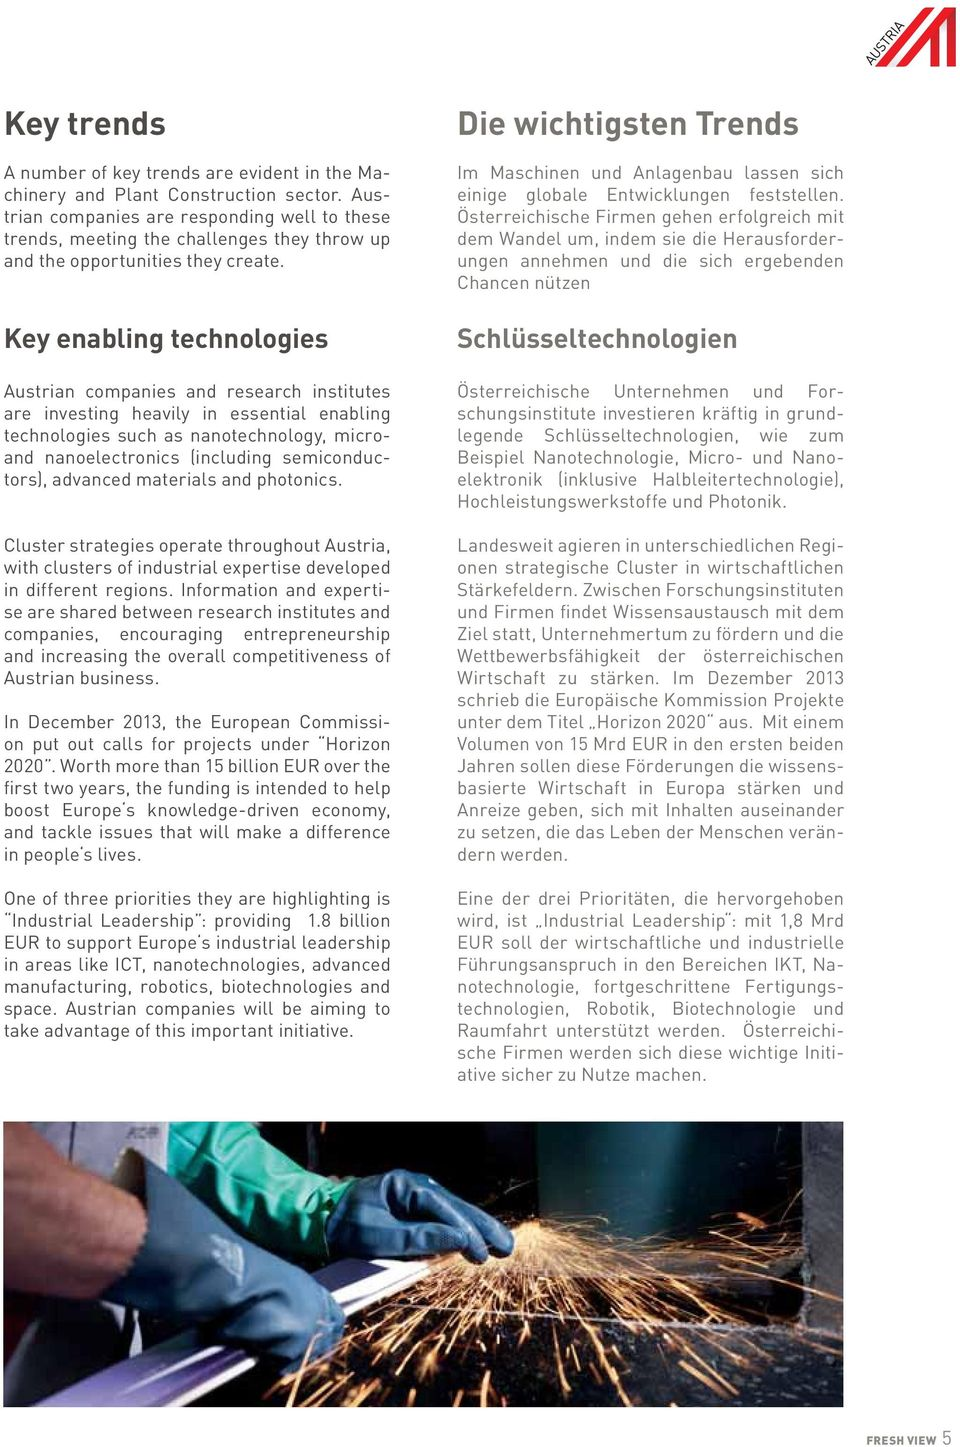 Key enabling technologies Austrian companies and research institutes are investing heavily in essential enabling technologies such as nanotechnology, microand nanoelectronics (including